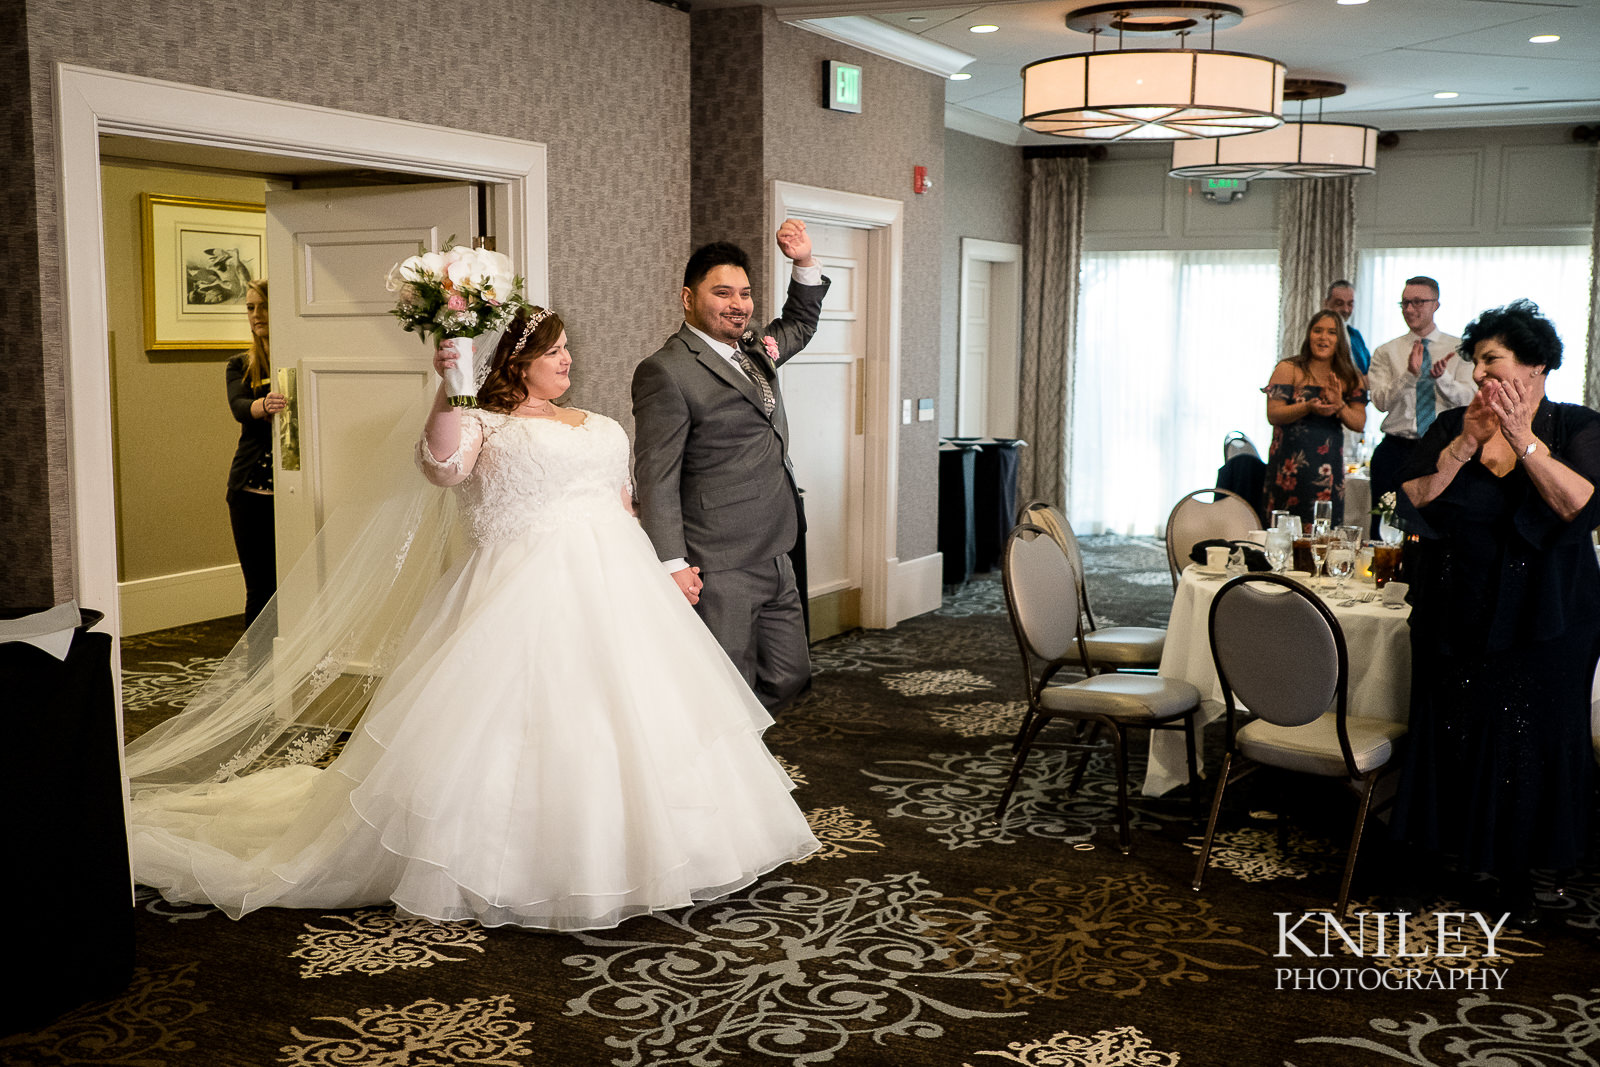 079 - Woodcliff Hotel - Rochester NY wedding photo - Kniley Photography.jpg